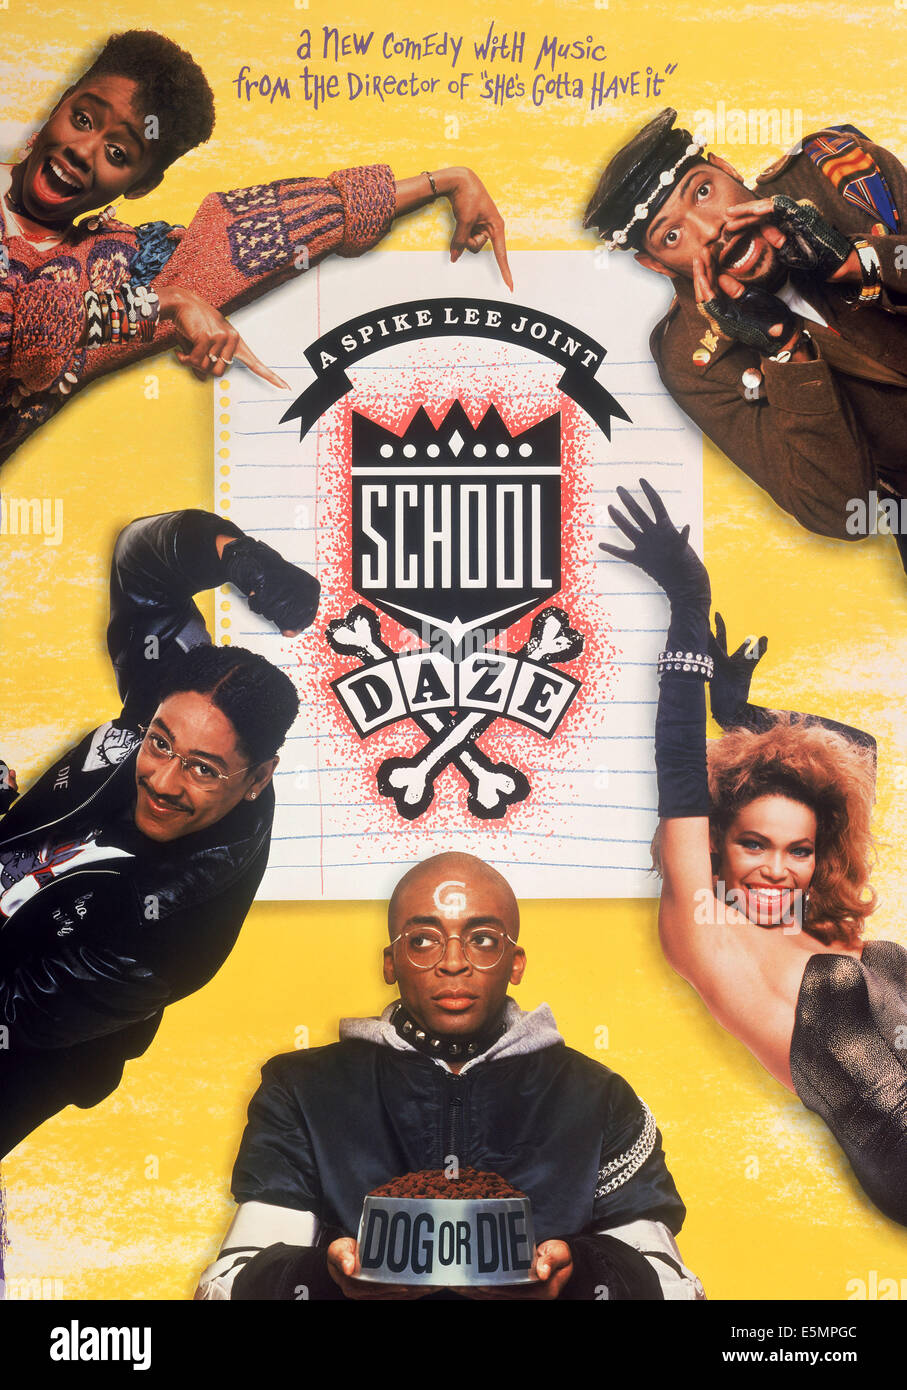 SCHOOL DAZE, left top to bottom: Kyme, Giancarlo Esposito, Spike Lee, right top to bottom: Laurence Fishburne, Tisha Stock Photo